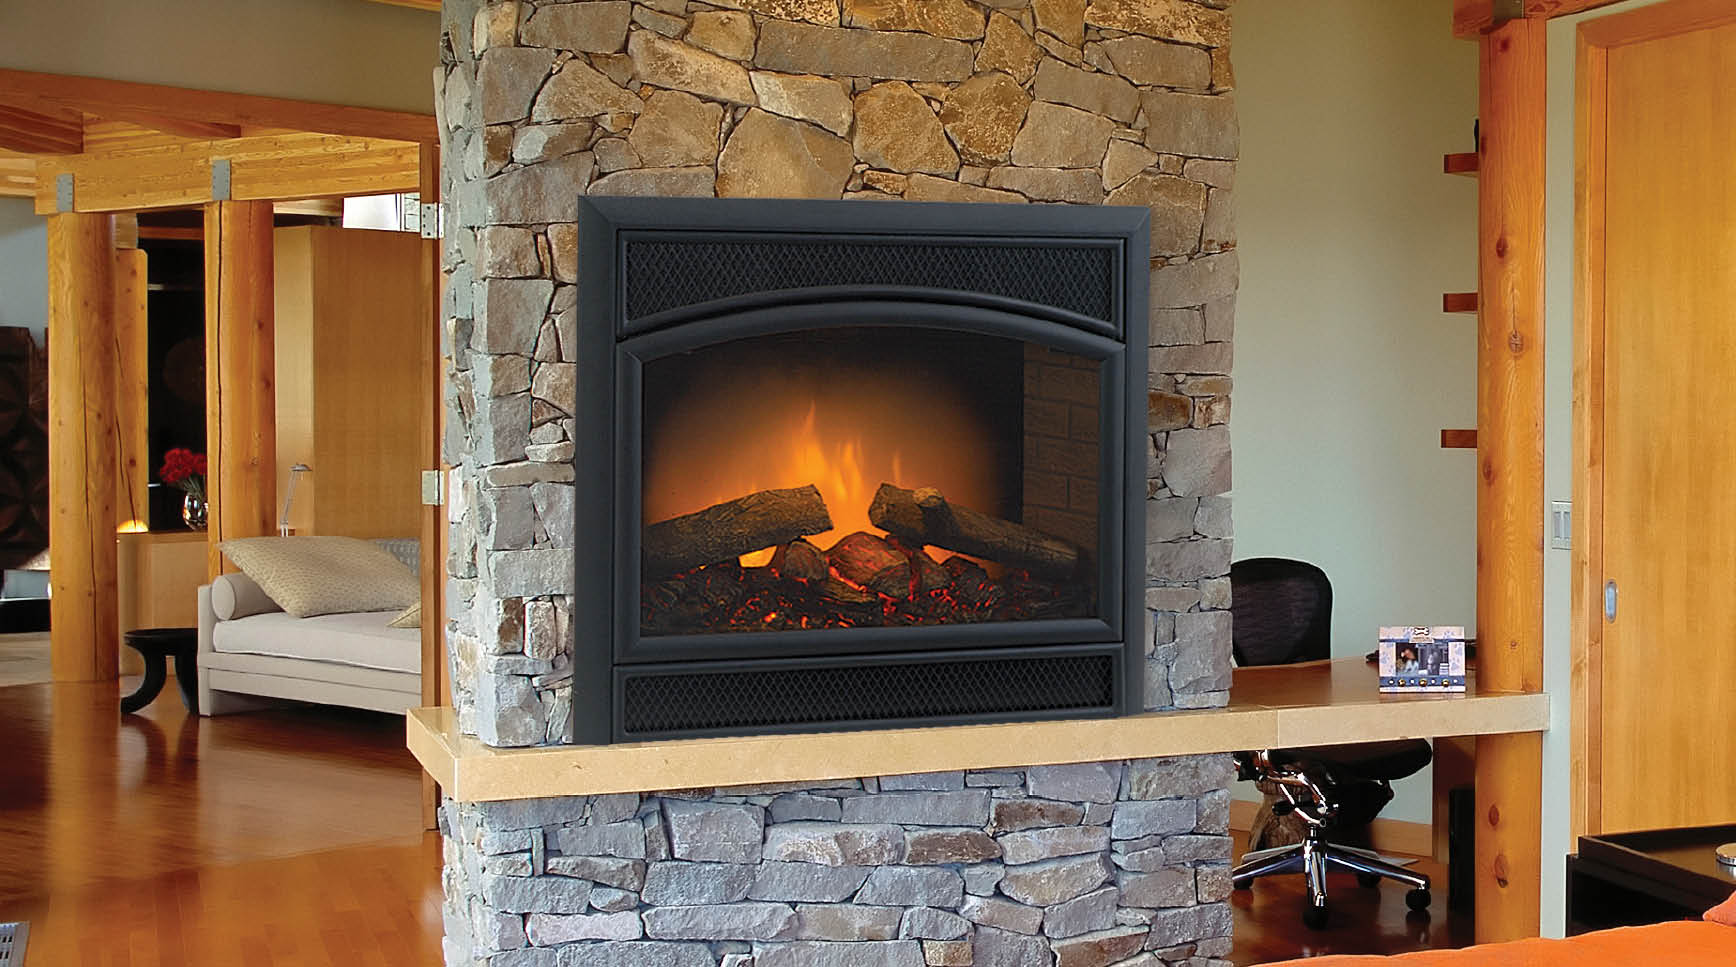 Two sided fireplace warms spacious interior effortless - Fireplace between two rooms ...